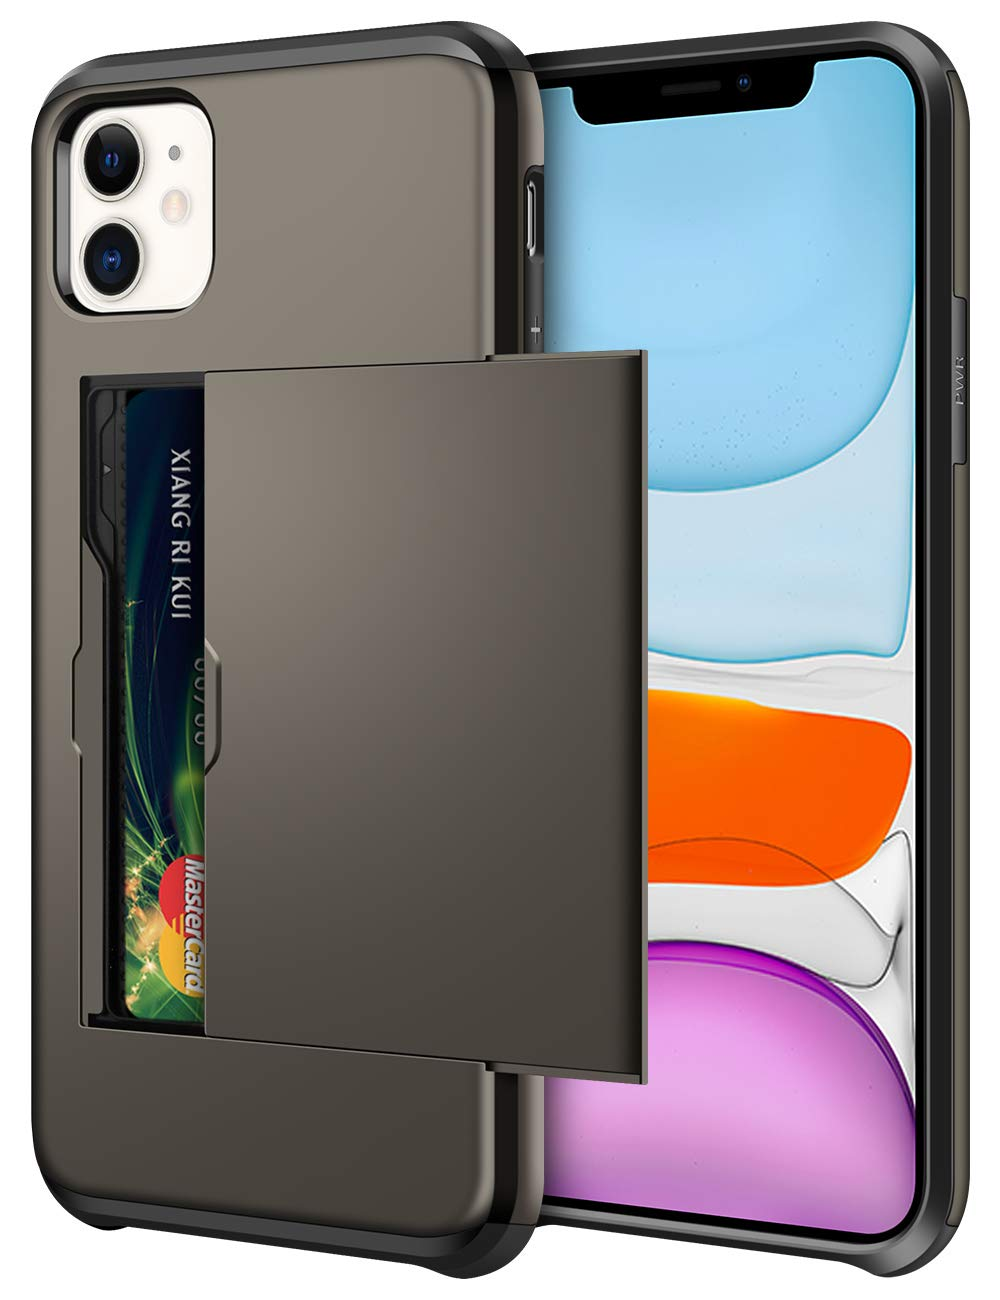 SAMONPOW Wallet Case for iPhone 11 Case with Card Holder Dual Layer Hybrid Shell Heavy Duty Protection Shockproof Anti Scratch Soft Rubber Bumper Cover Case for iPhone 11 6.1 inch Gun Color